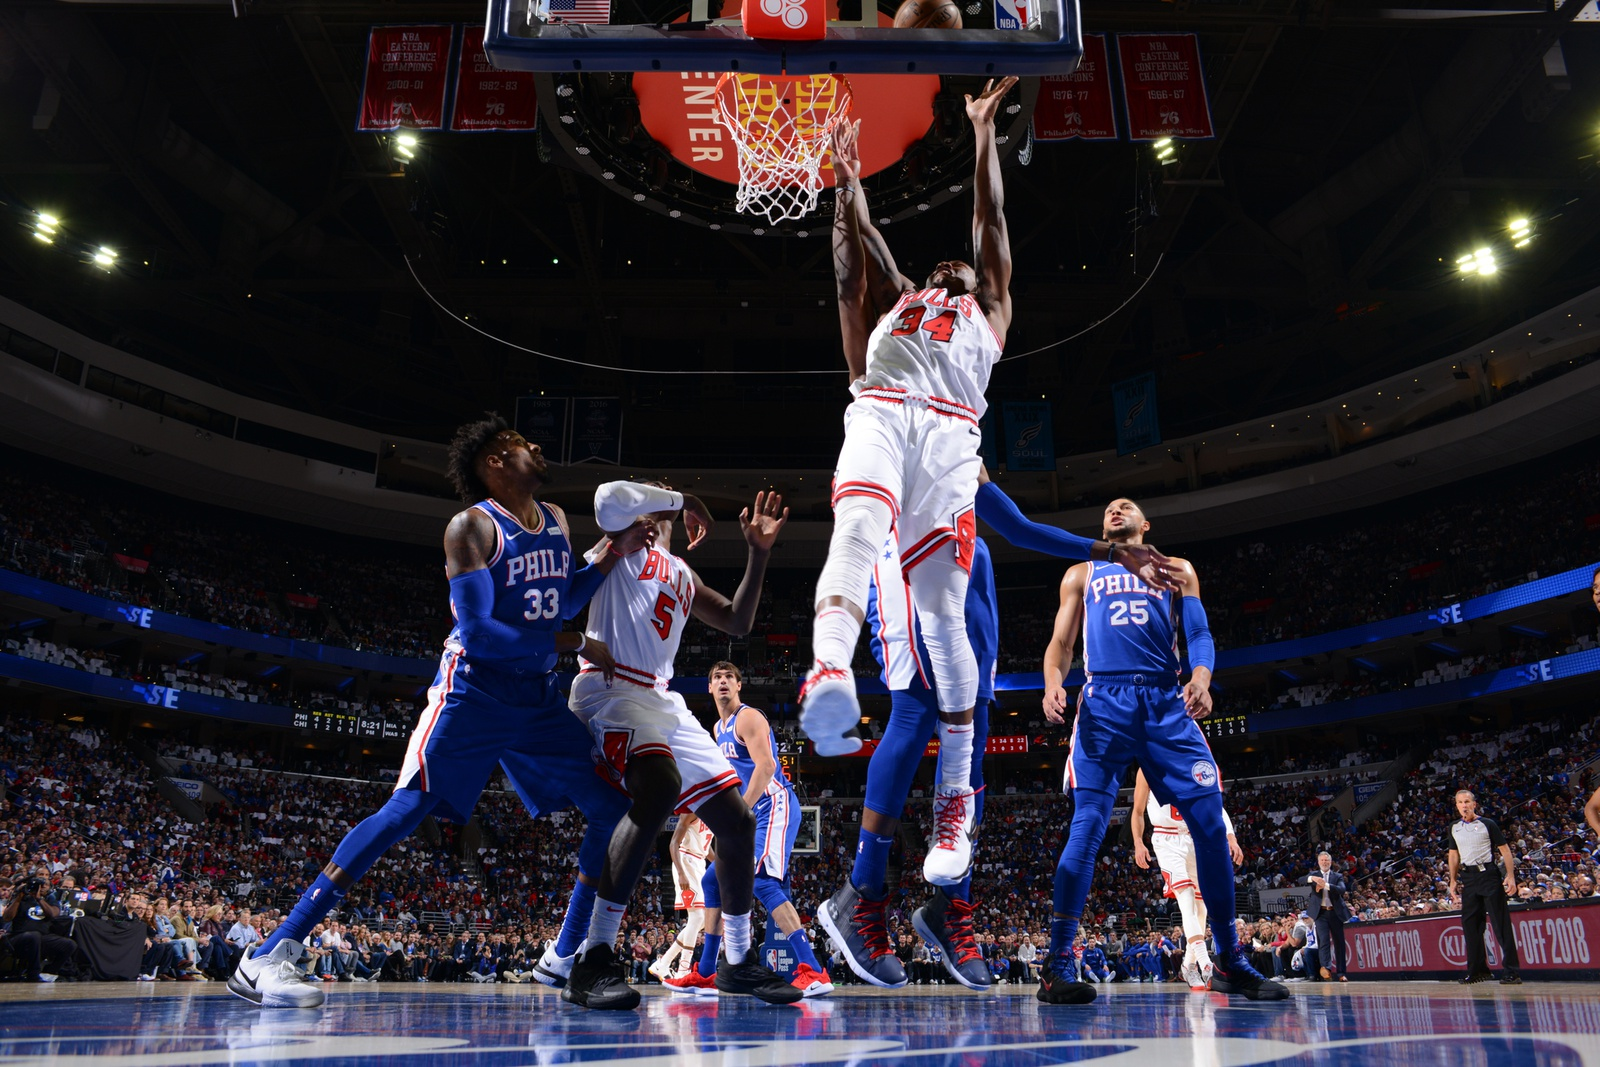 Wendell Carter Jr. of the Chicago Bulls attempts a rebound in the Bulls' season opener against the Philadelphia 76ers, October 18, 2018